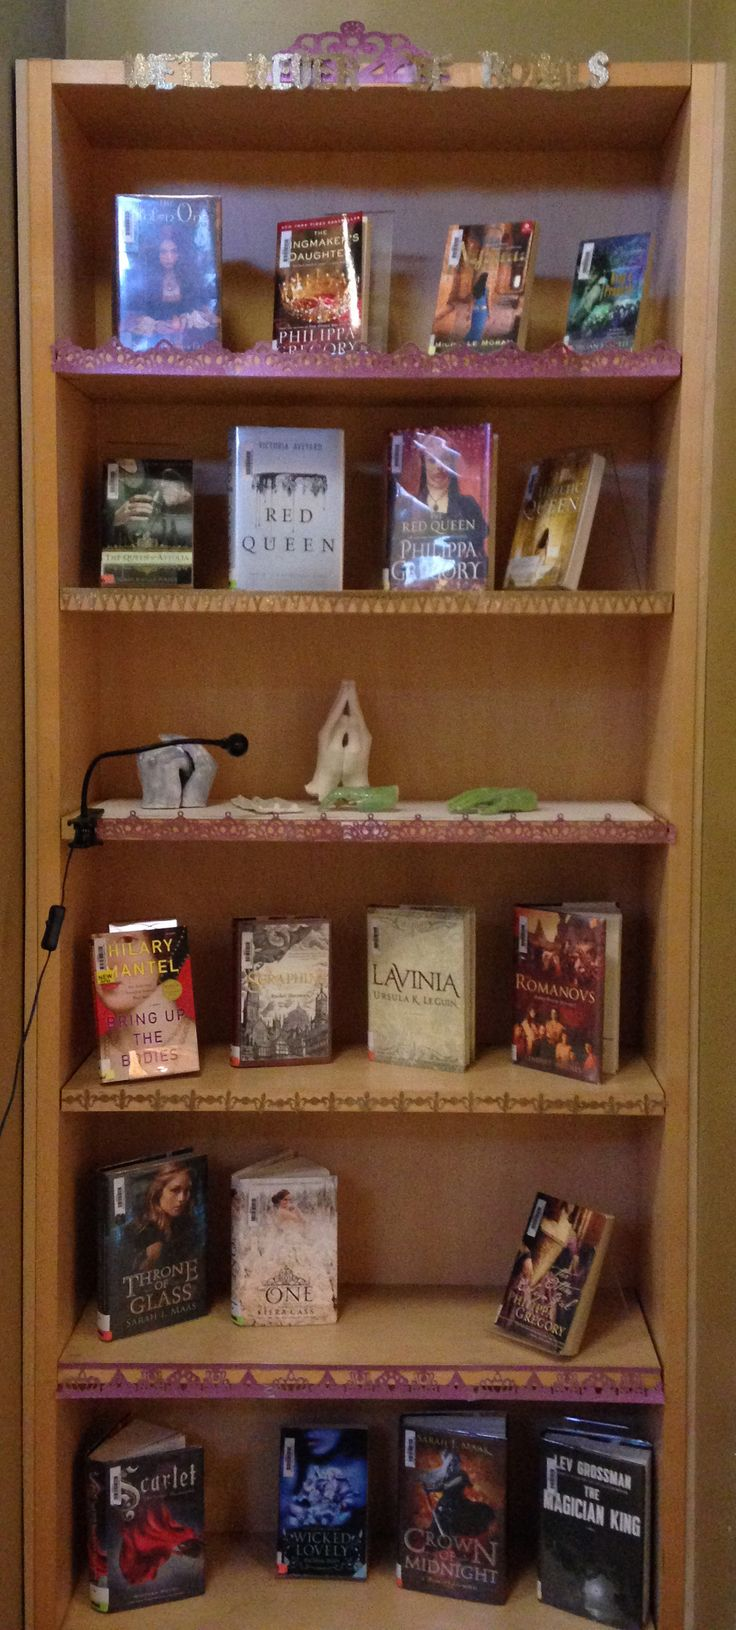 We'll never be royals library display. High school library. fiction books  featuring